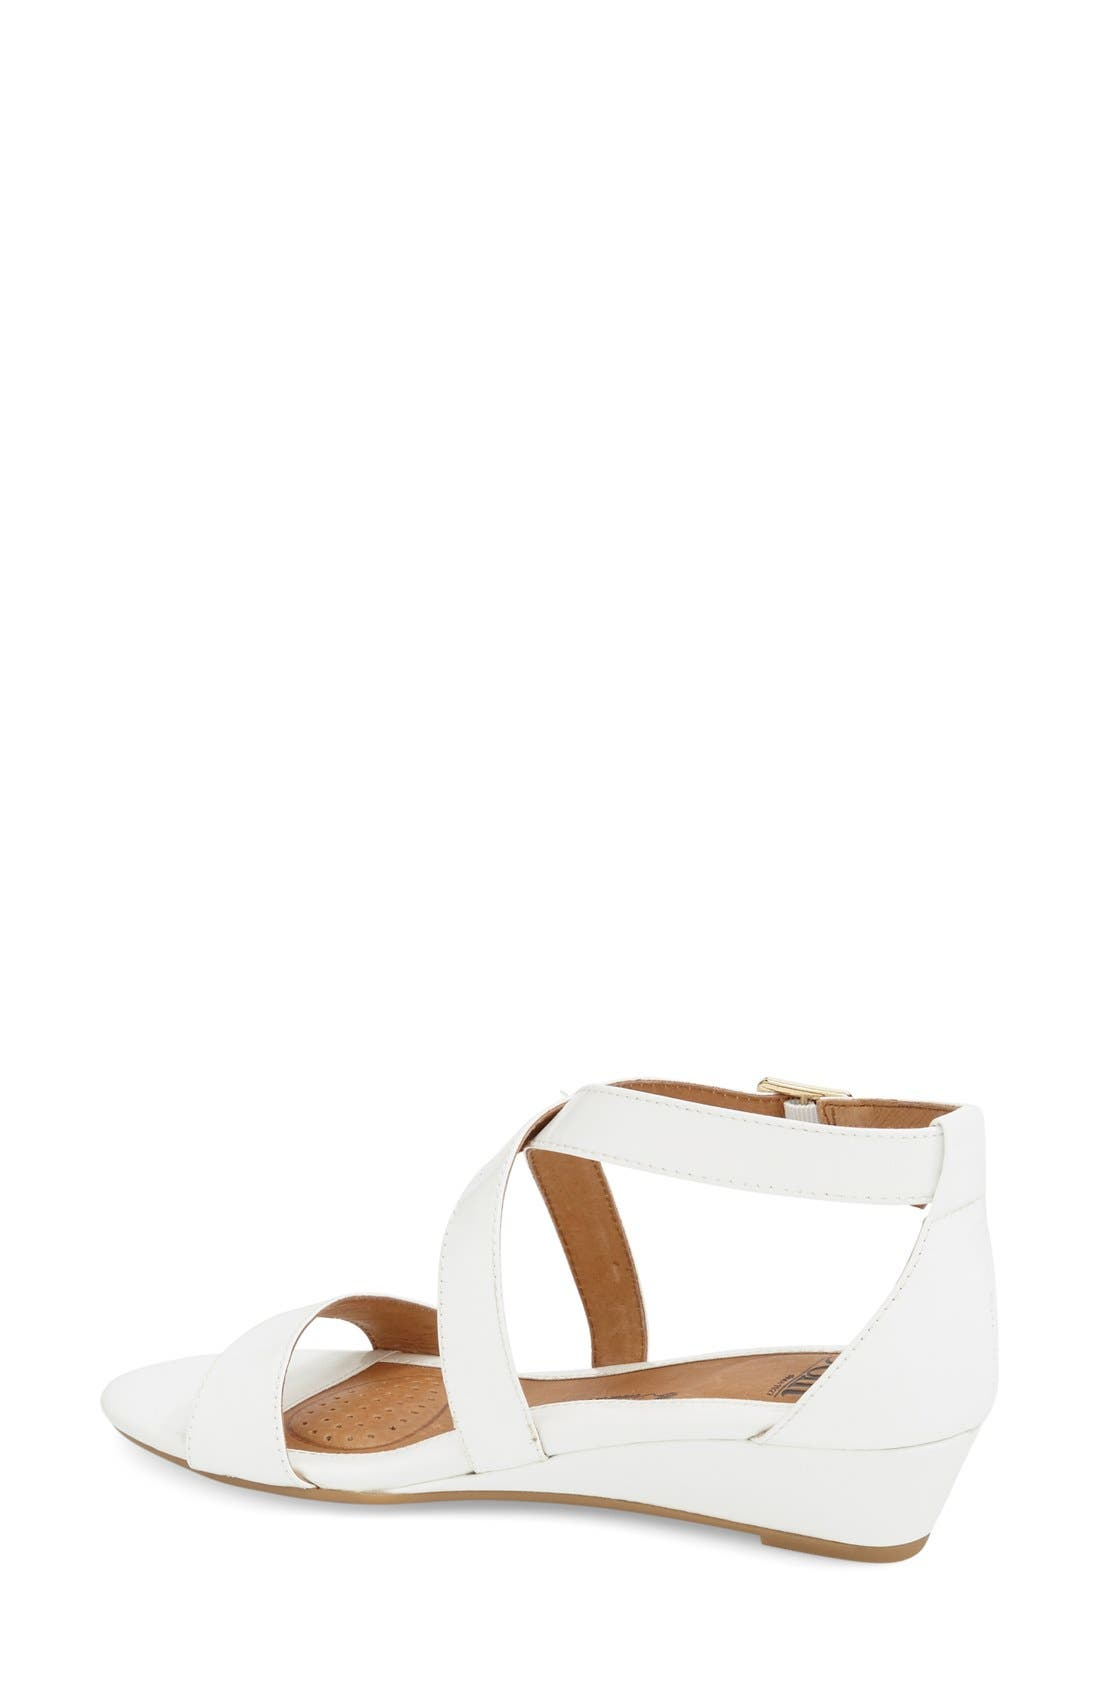 'Innis' Low Wedge Sandal,                             Alternate thumbnail 19, color,